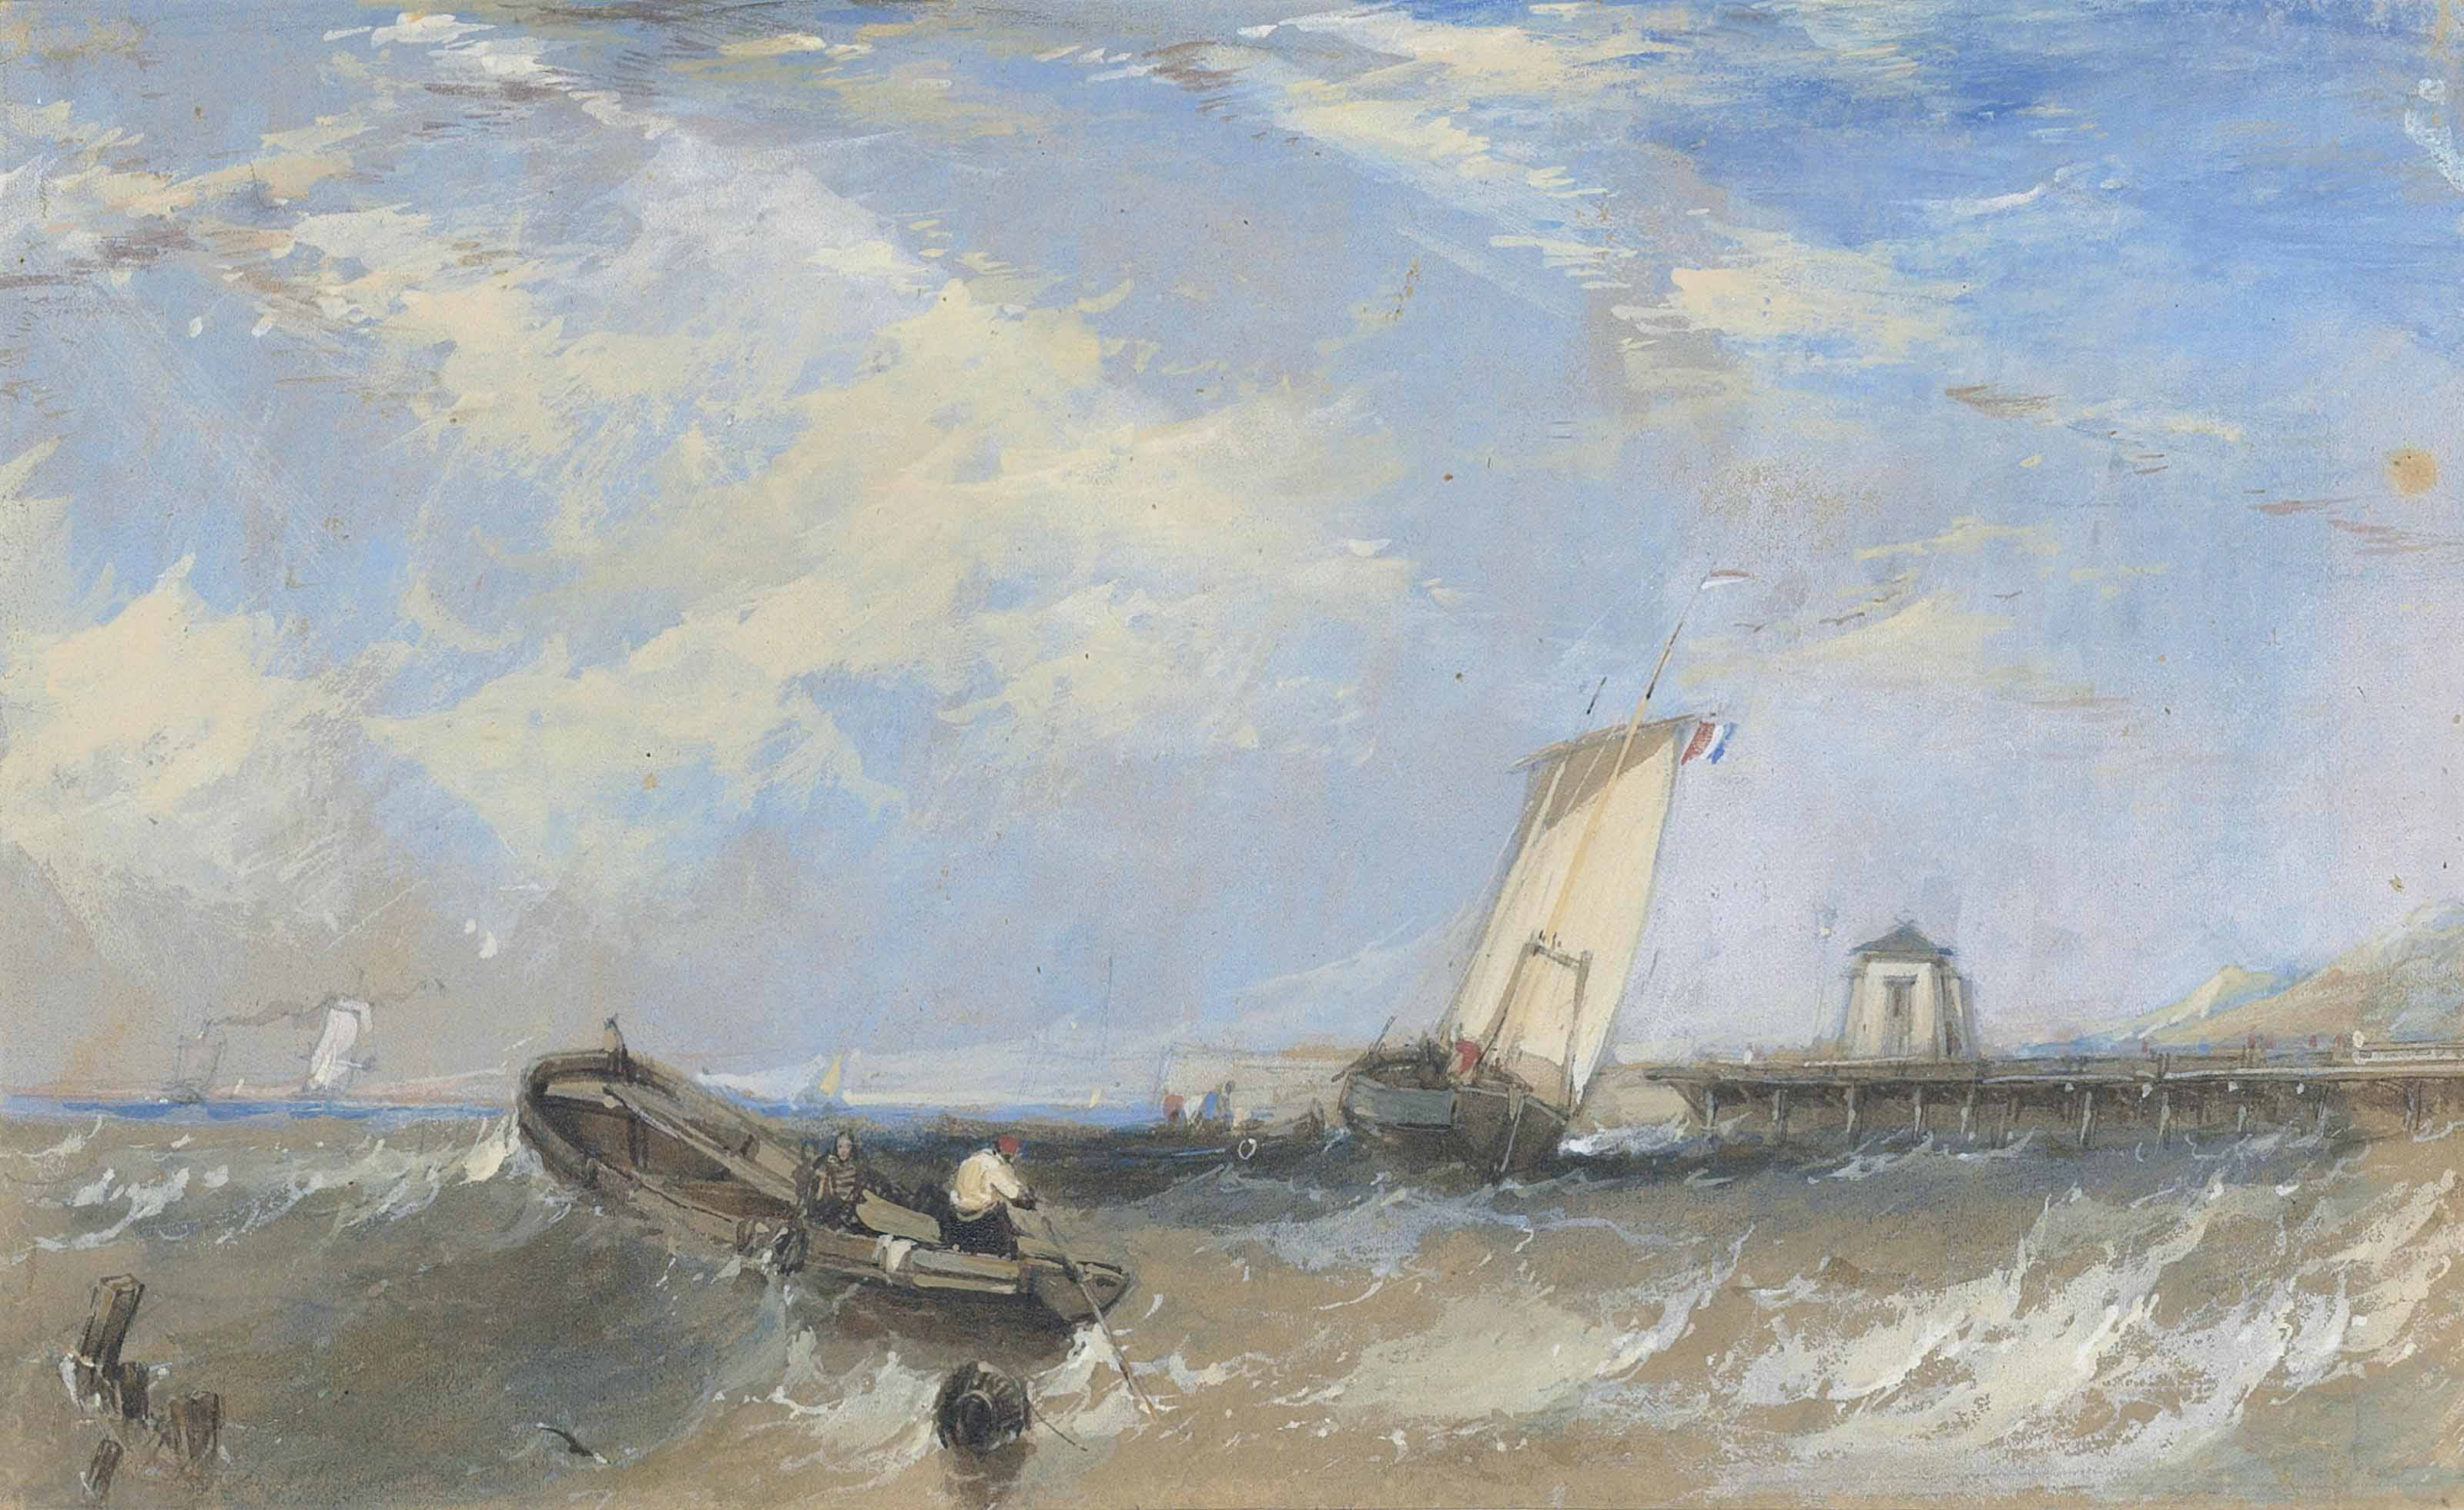 Shipping on a rough sea with a harbour in the background